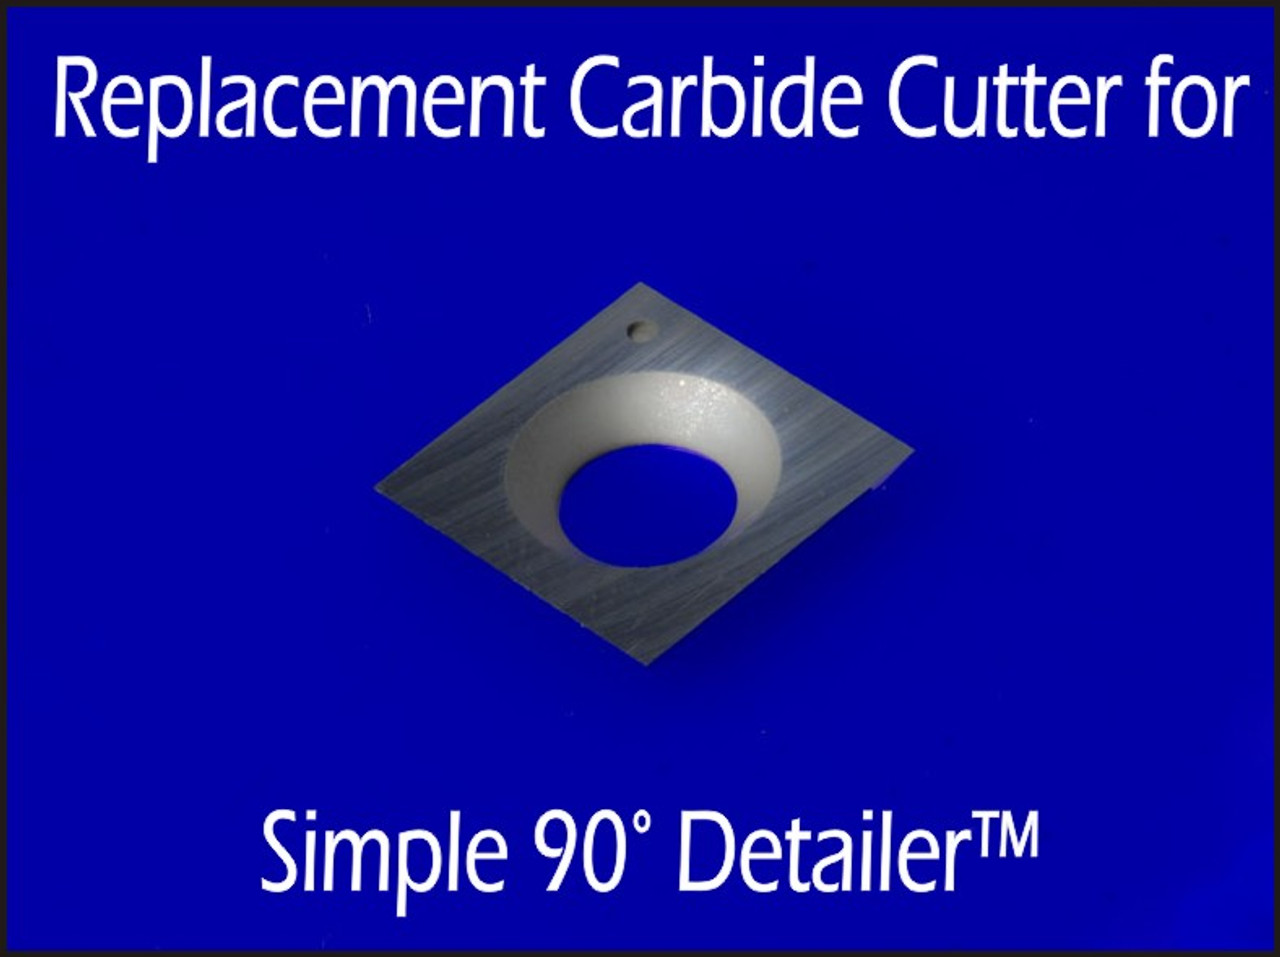 Cutter for S90D - Replacement Carbide Cutter for Simple 90° Detailer Woodturning Tool